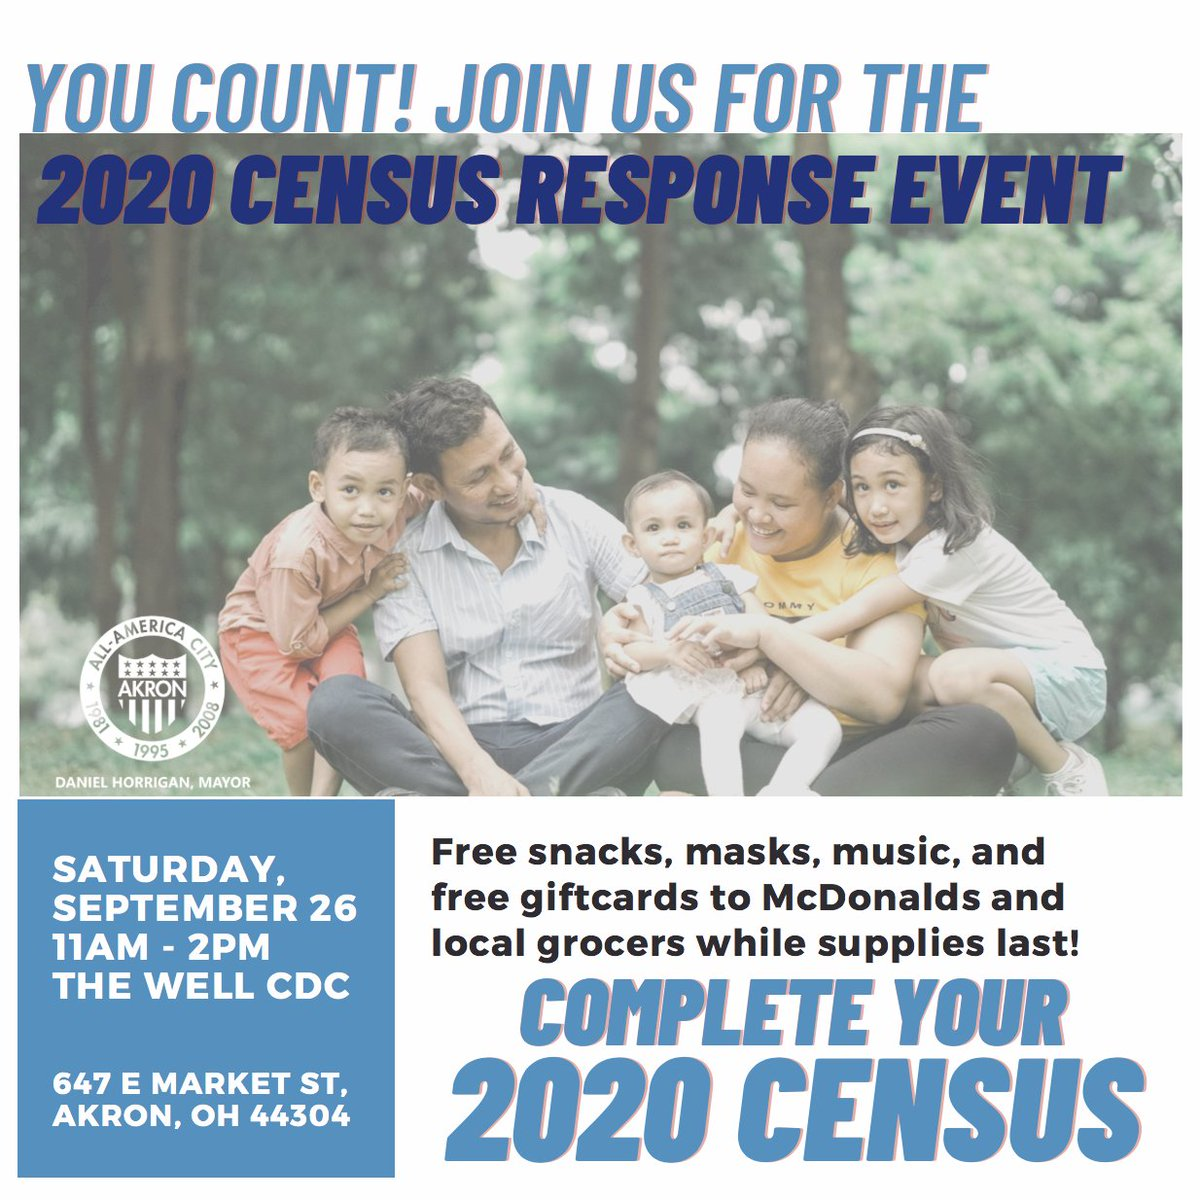 Time is running out for the 2020 Census. If you haven't filled it out, you can go online today to . You can also come to our last Census Response event this Sat., Sept. 26 between 11am-2pm at @thewellakron. We'll have free snacks, masks, and gift cards.